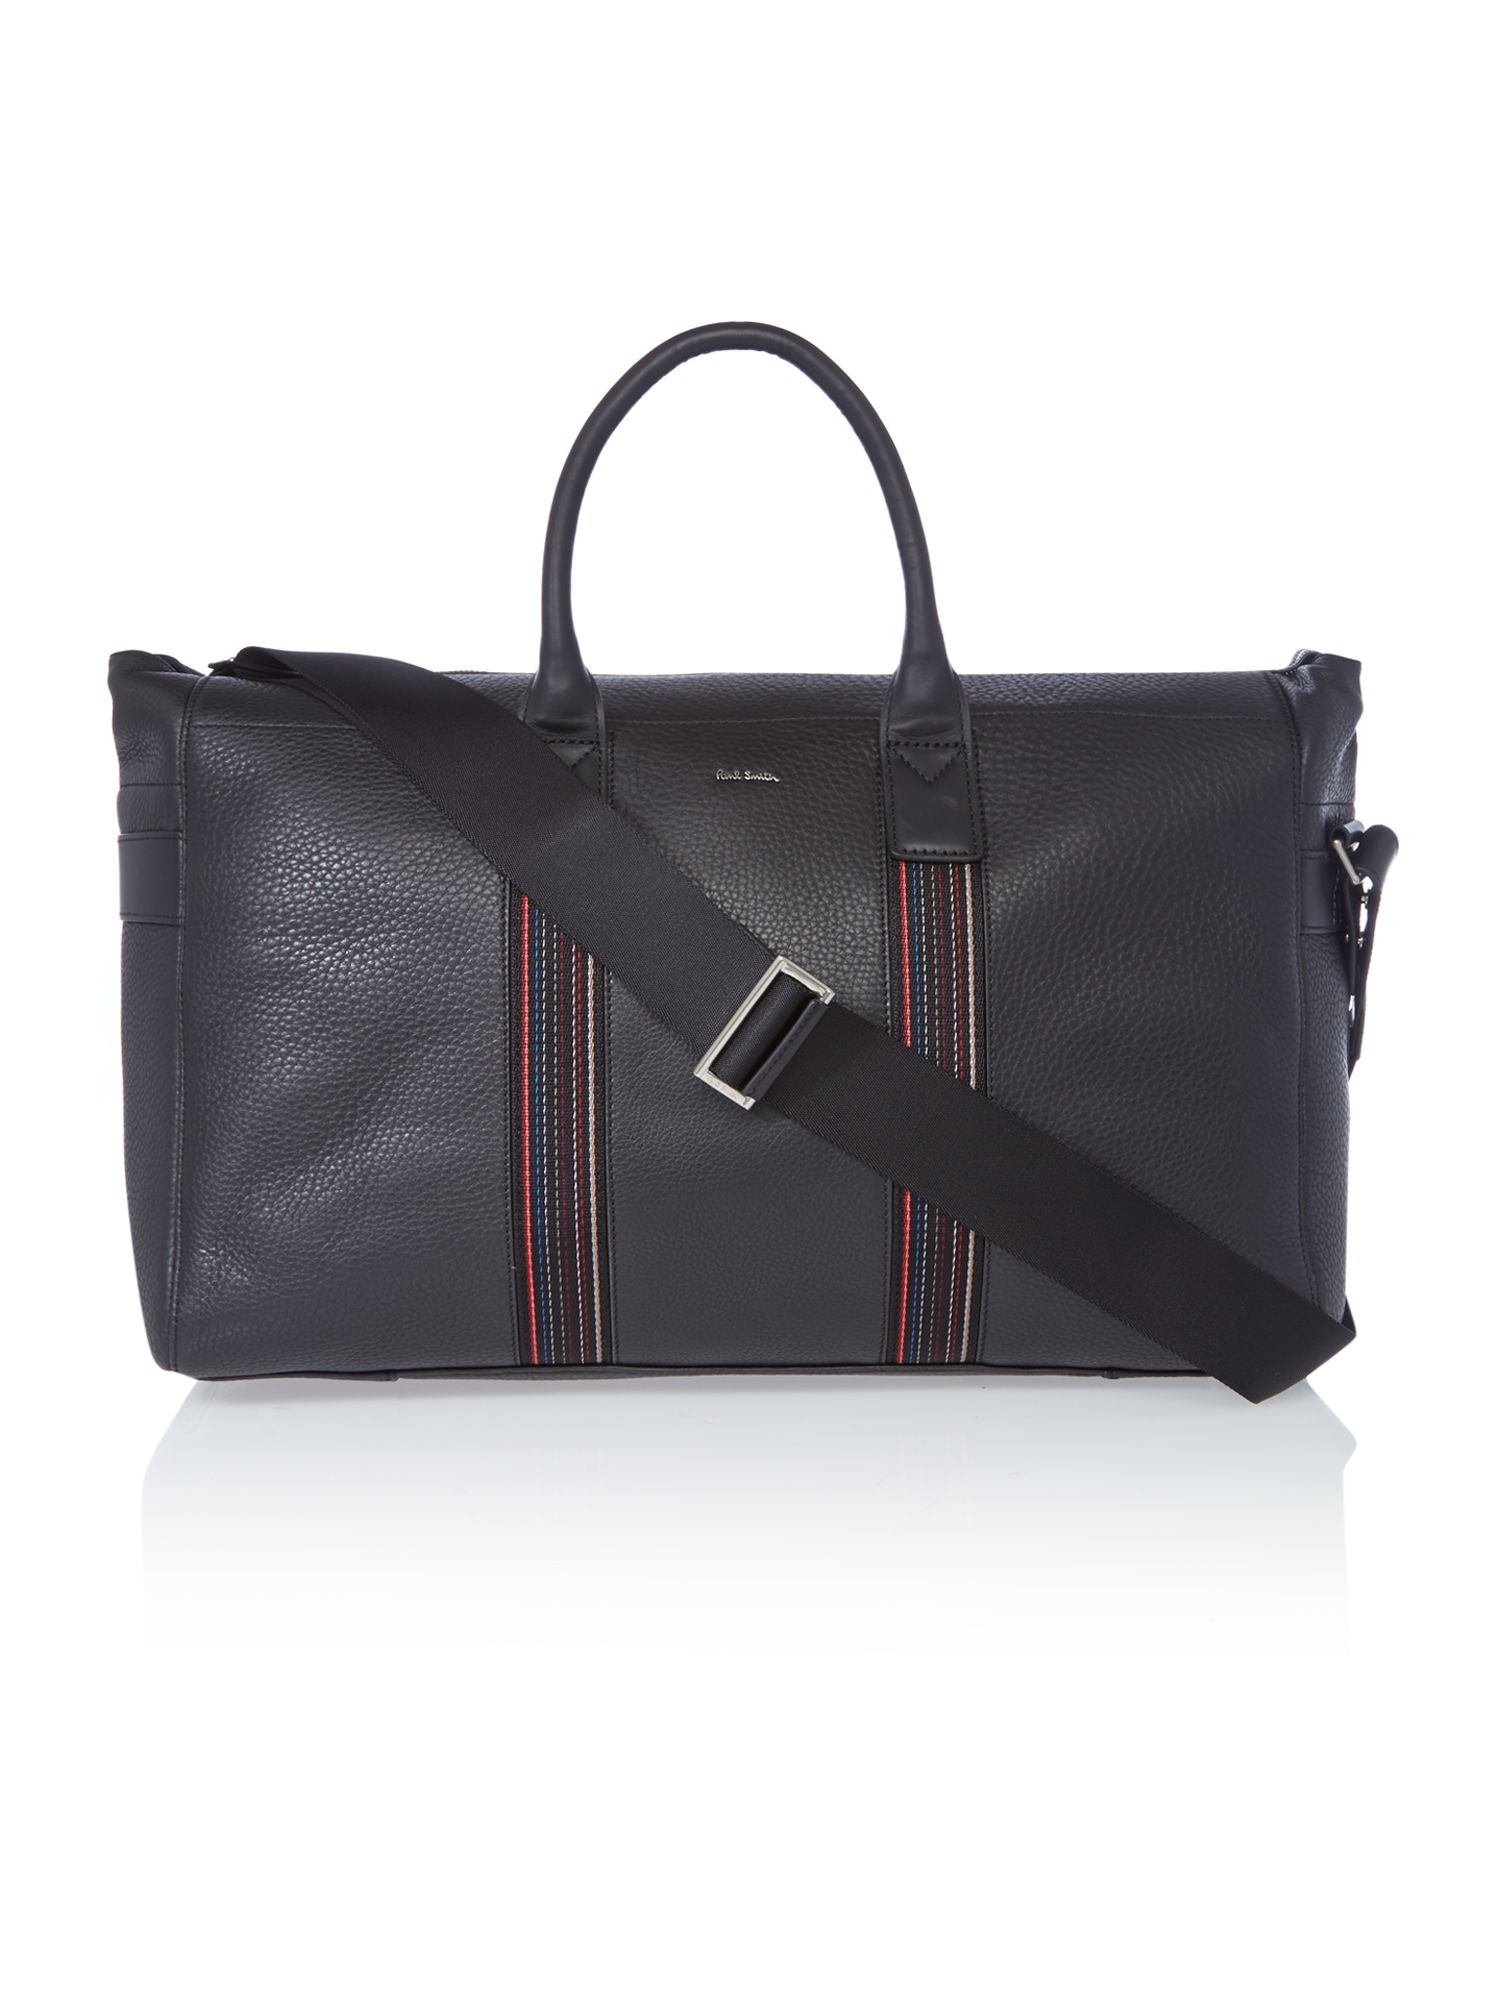 Paul Smith London Webbing Leather Holdall Bag